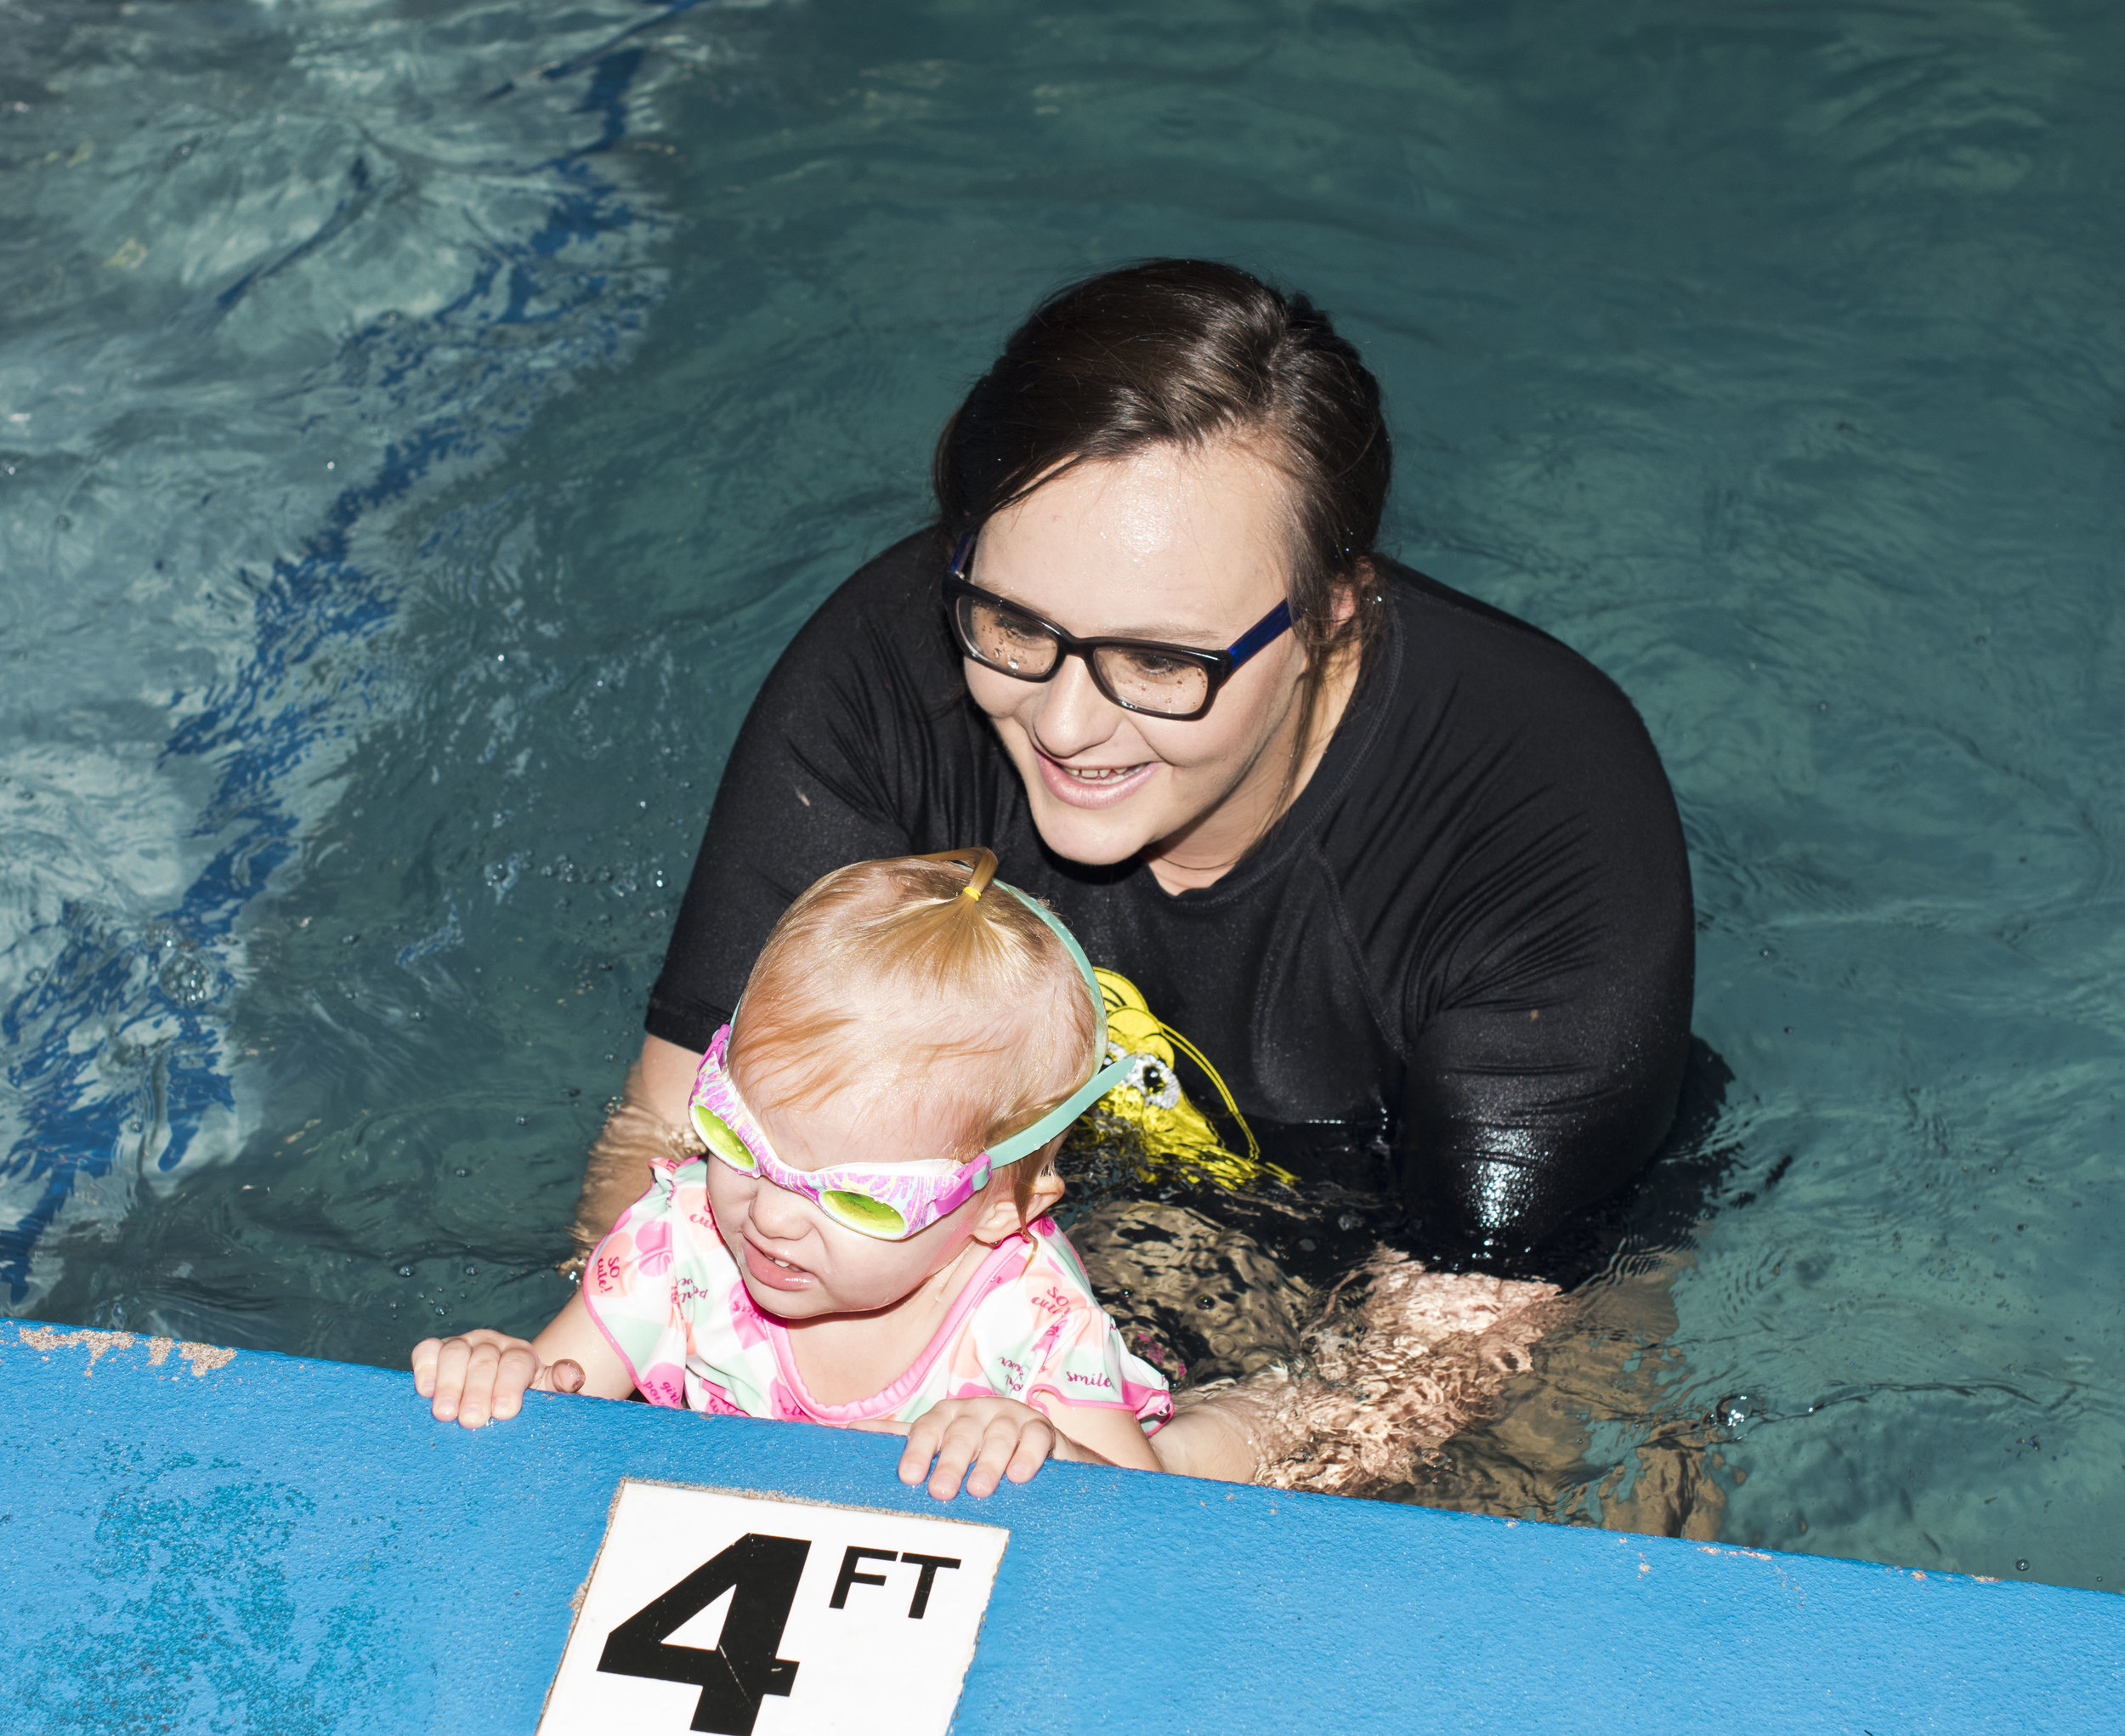 """Tadpole: Movement & Exit - """"I am learning to roll and swim-float-swim, and get out of the pool safely.""""Students that have completed TADPOLE goals are able to safely get from one side of the pool to the other using their back float to rest and breath along the way. Students may also get from one side of the pool to the other by using a back kick to get to the other side."""